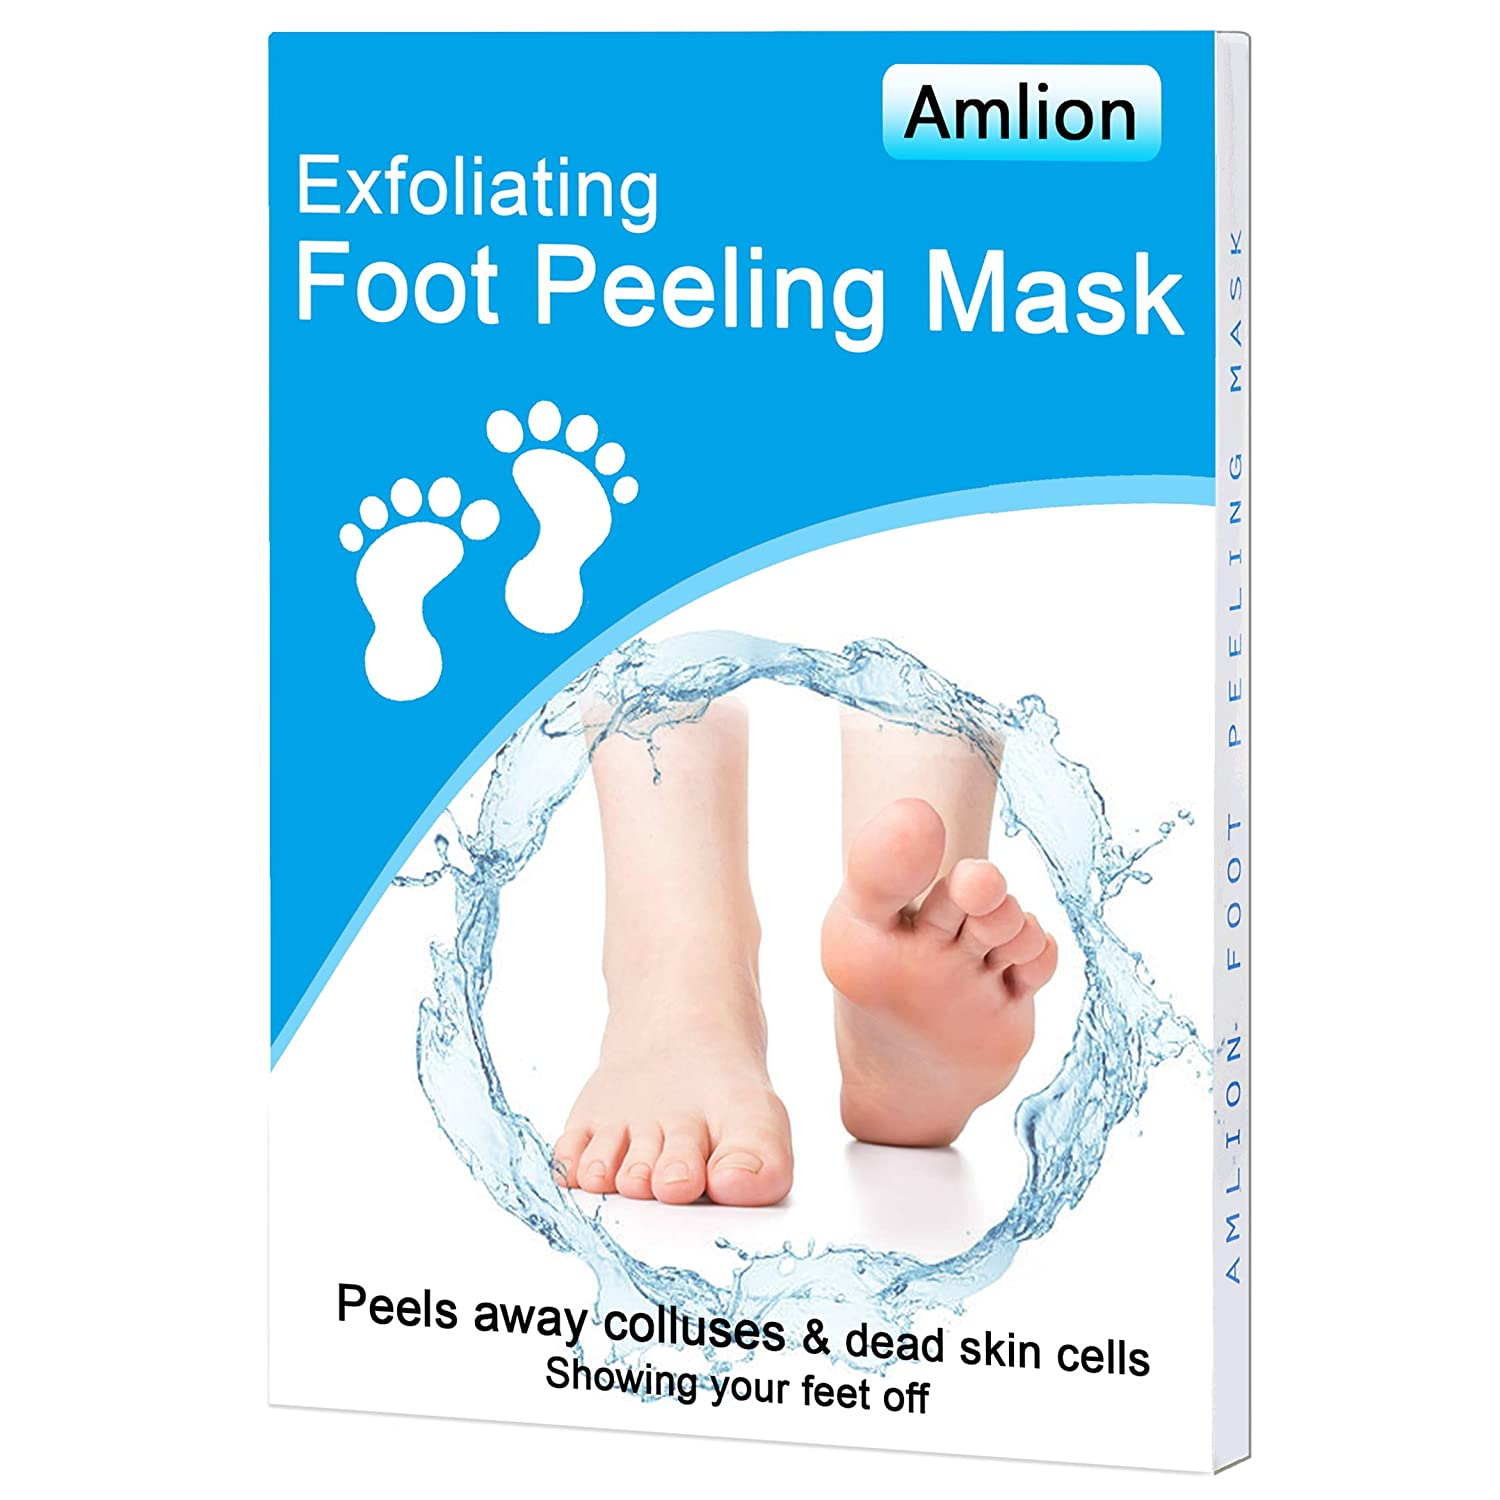 Foot Peel Mask for Baby Soft Feet,Exfoliating Foot Mask for Dead Skin & Callus Remover, Smooth and Healthy Skin,Moisturizing and Nourishing Amfacory